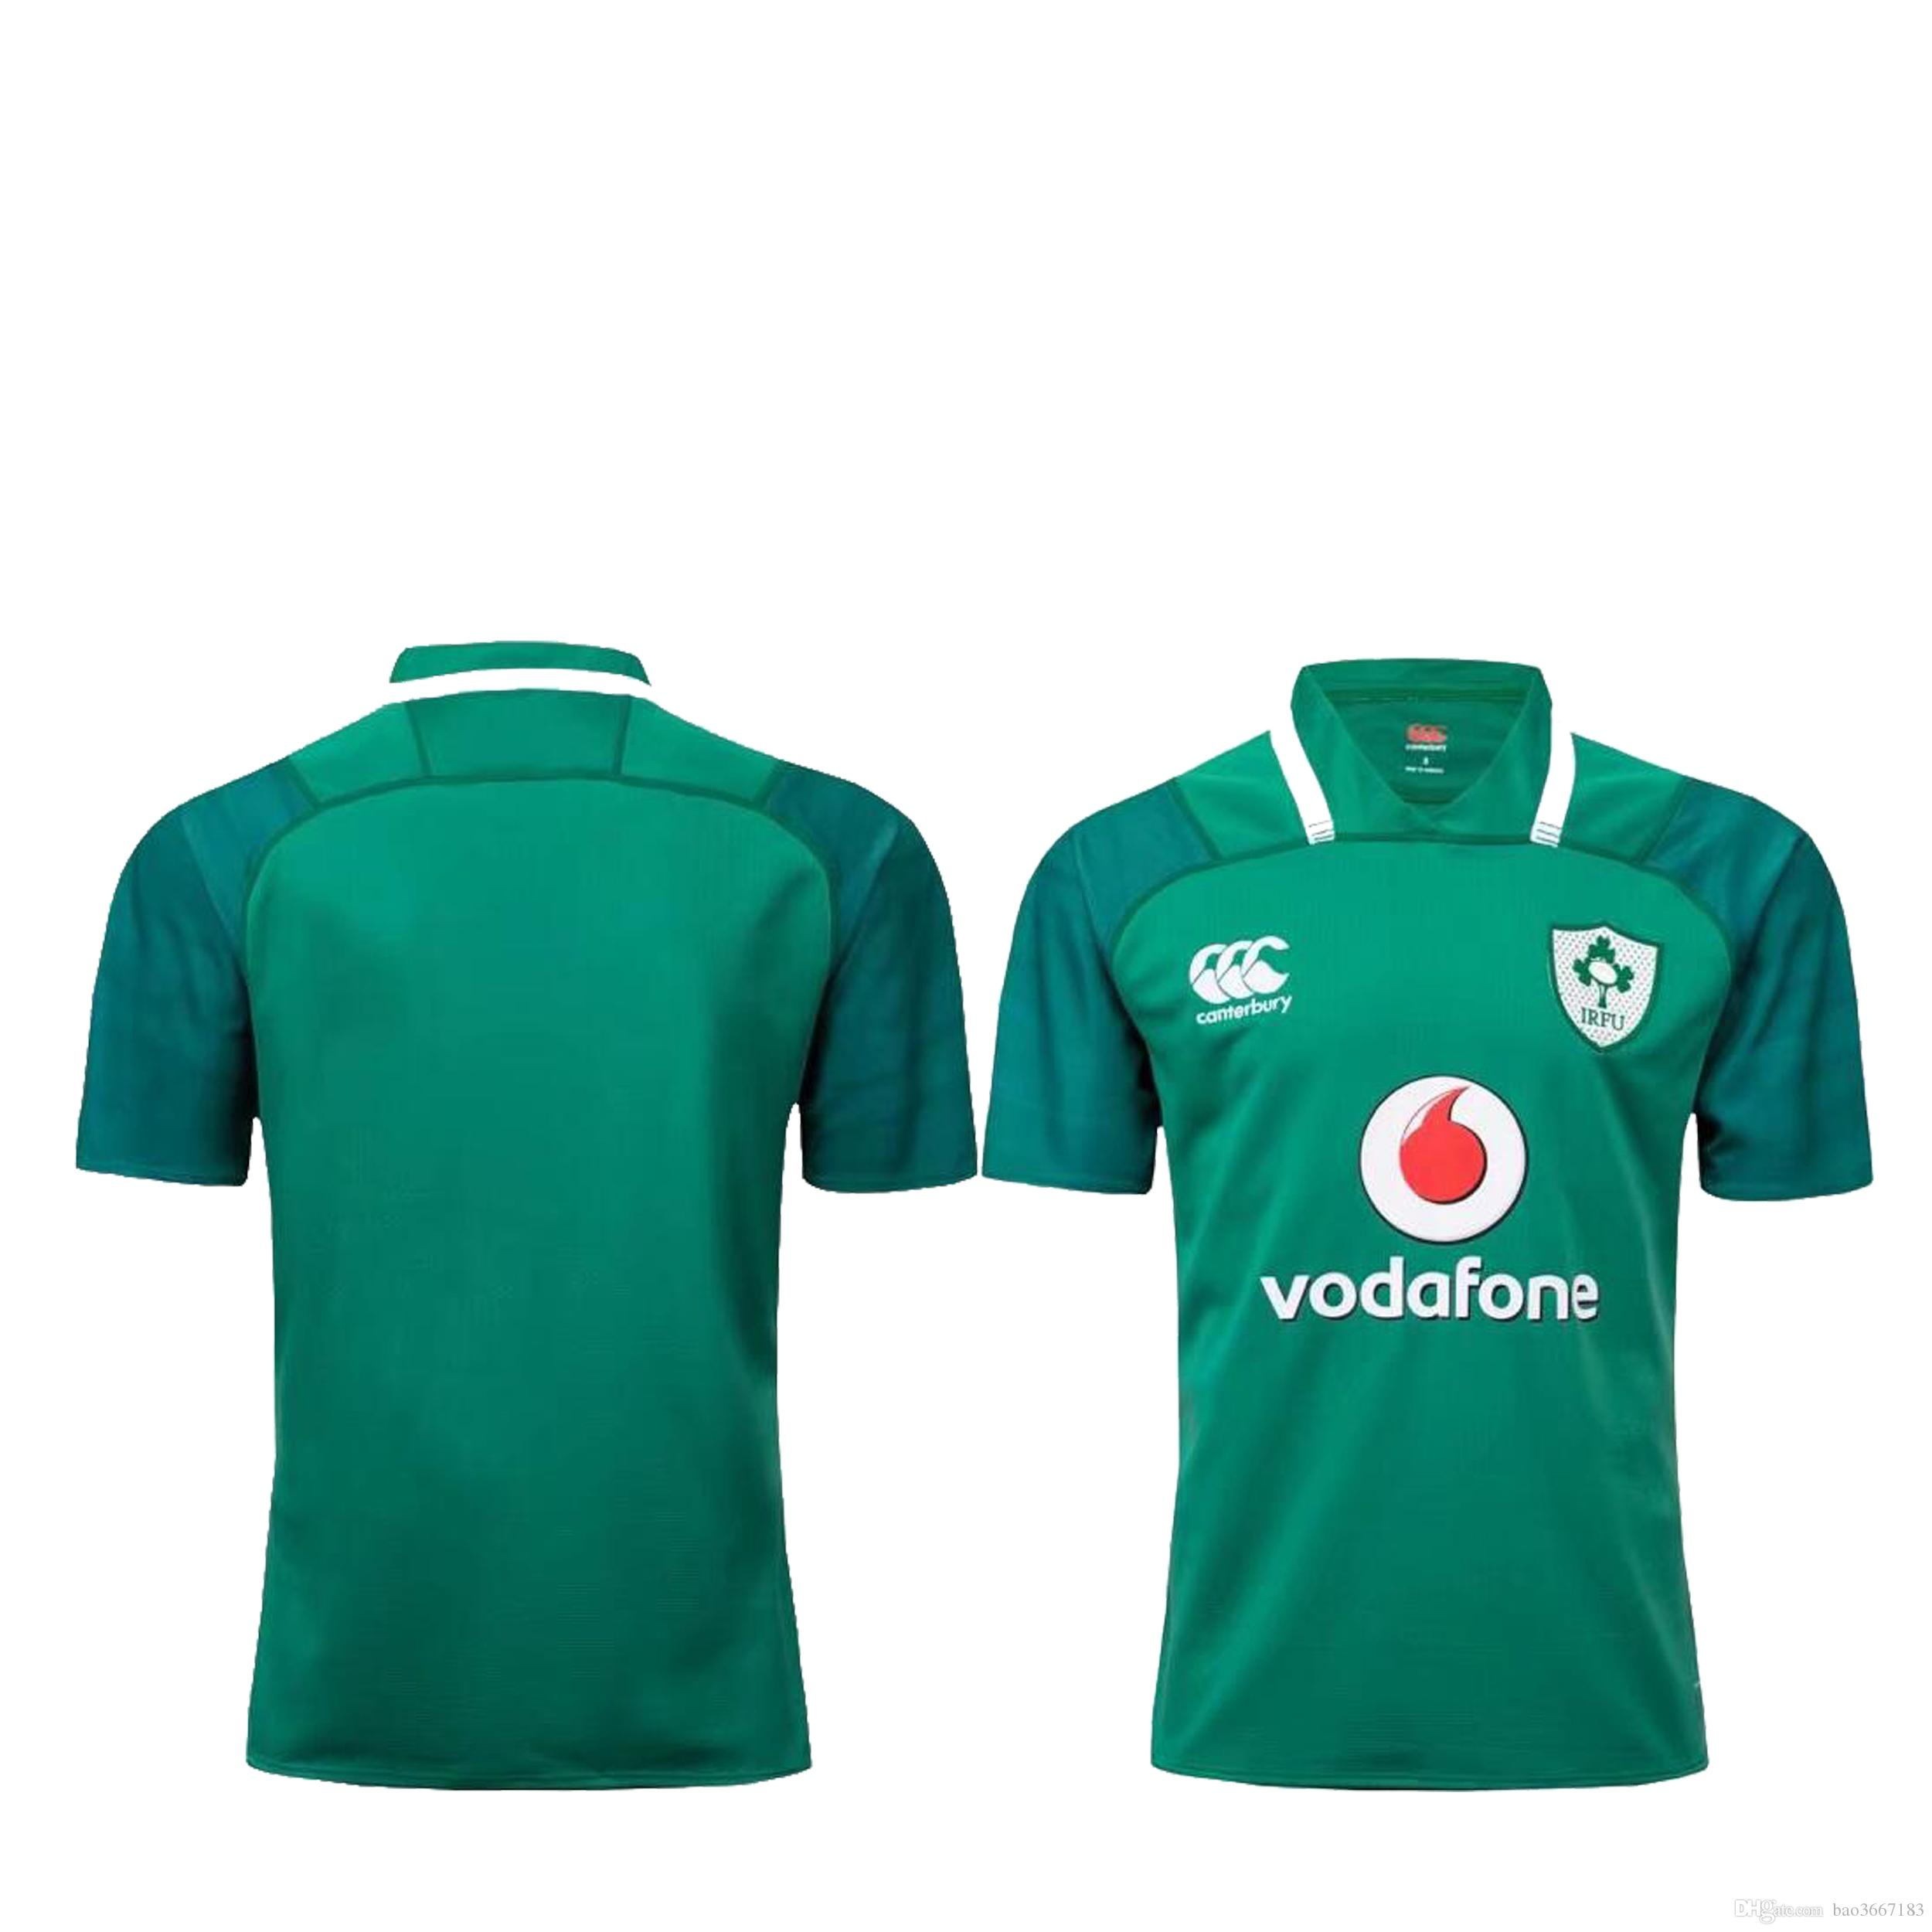 171c941441e78 2019 Ireland Rugby Home Pro Jersey 2017 2018 Size S M L XL XXL XXXL 2017  2018 IRFU Rugby Shirt From Bao3667183, $15.82 | DHgate.Com